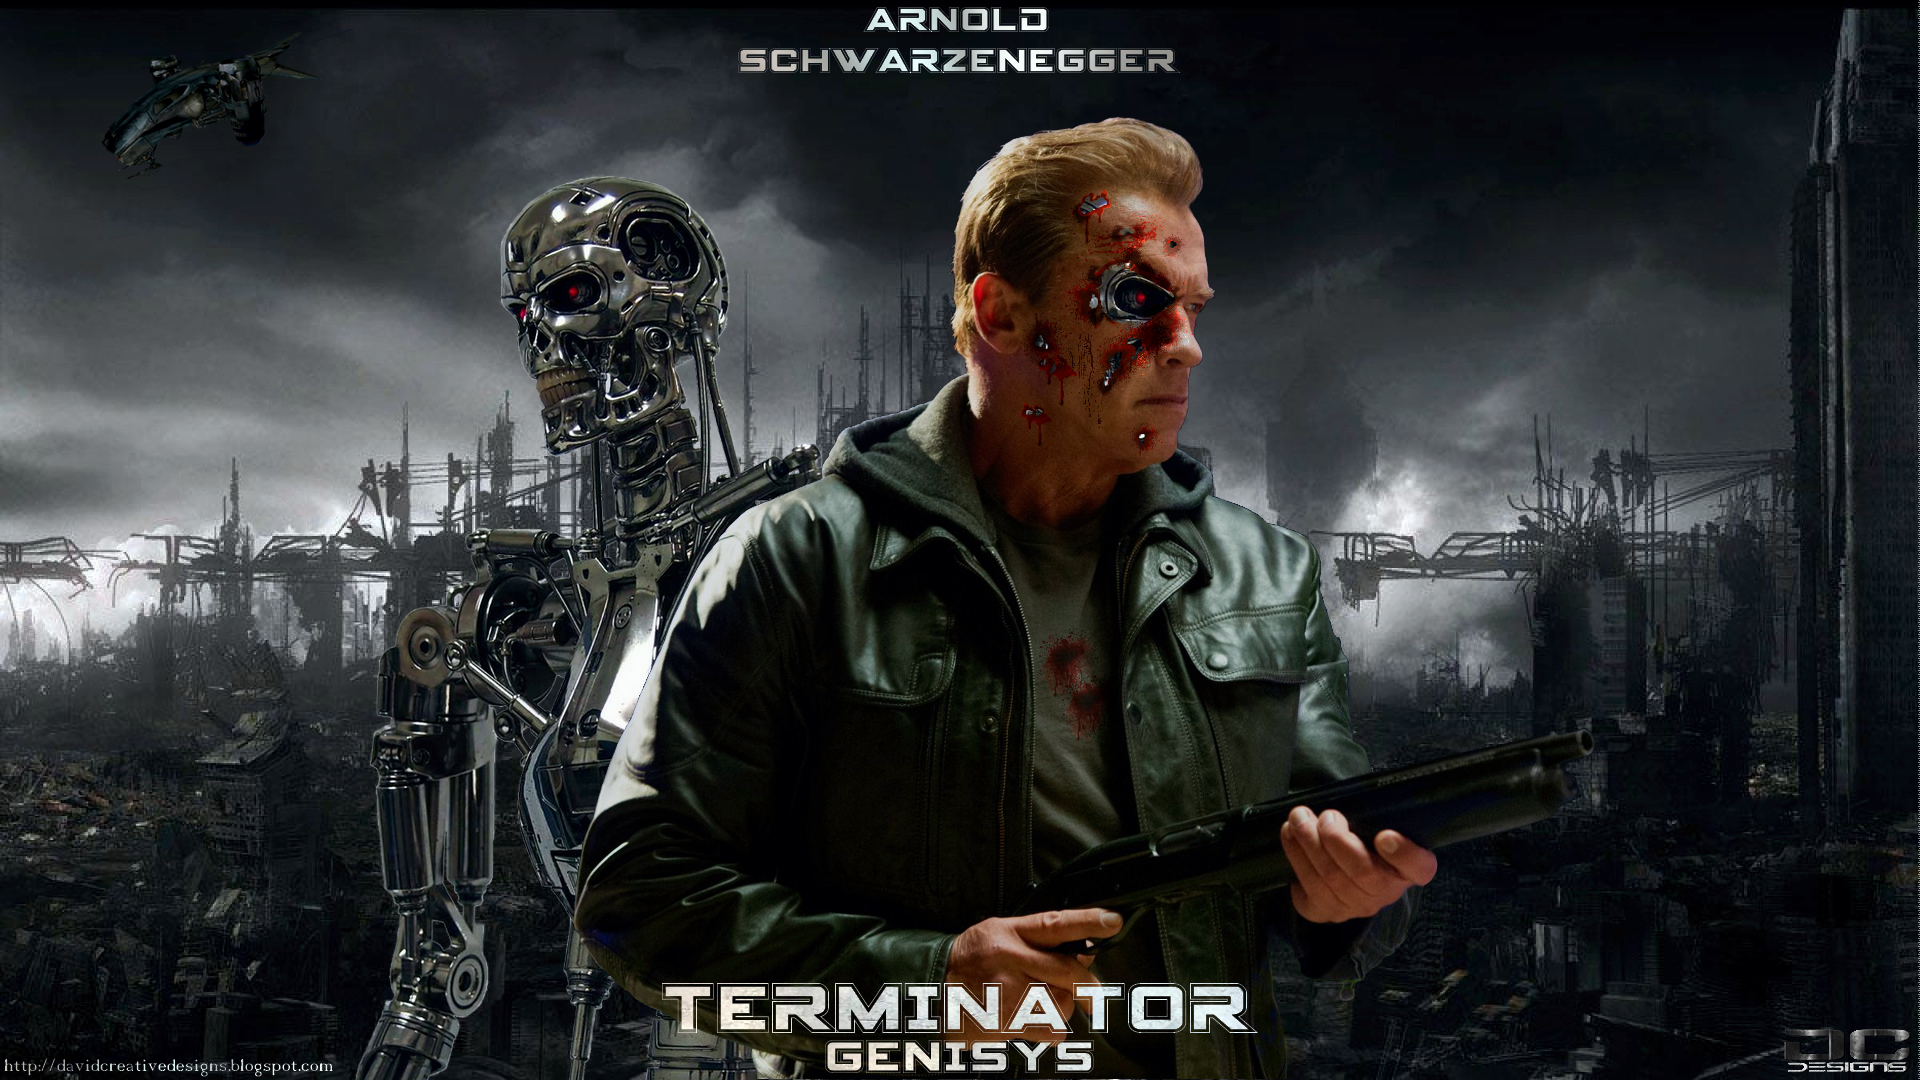 Terminator Genisys Arnold wallpapers (72 Wallpapers) - HD Wallpapers